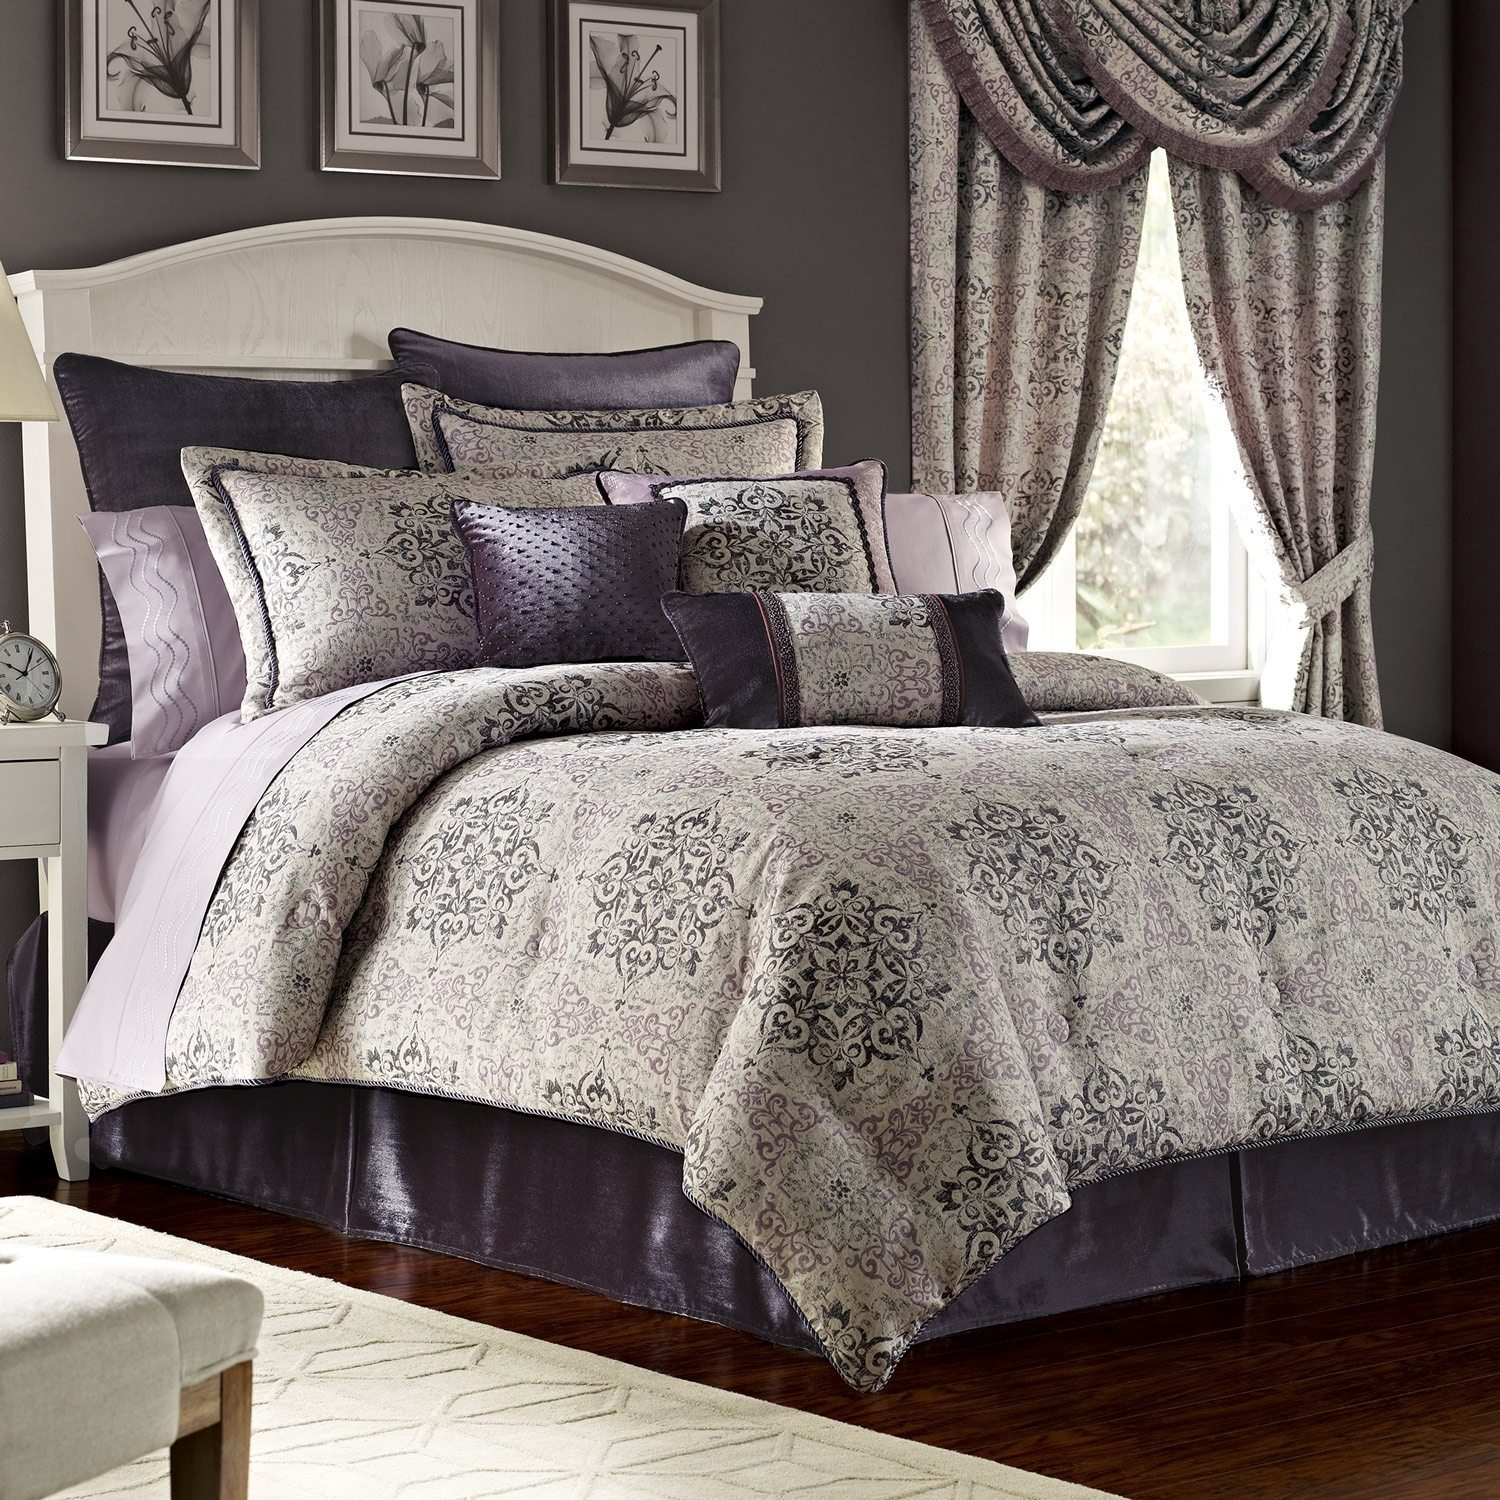 King comforter sets gray milena gray 7 pc fullqueen comforter set 8 piece king dawson black and Queen size bed and mattress set